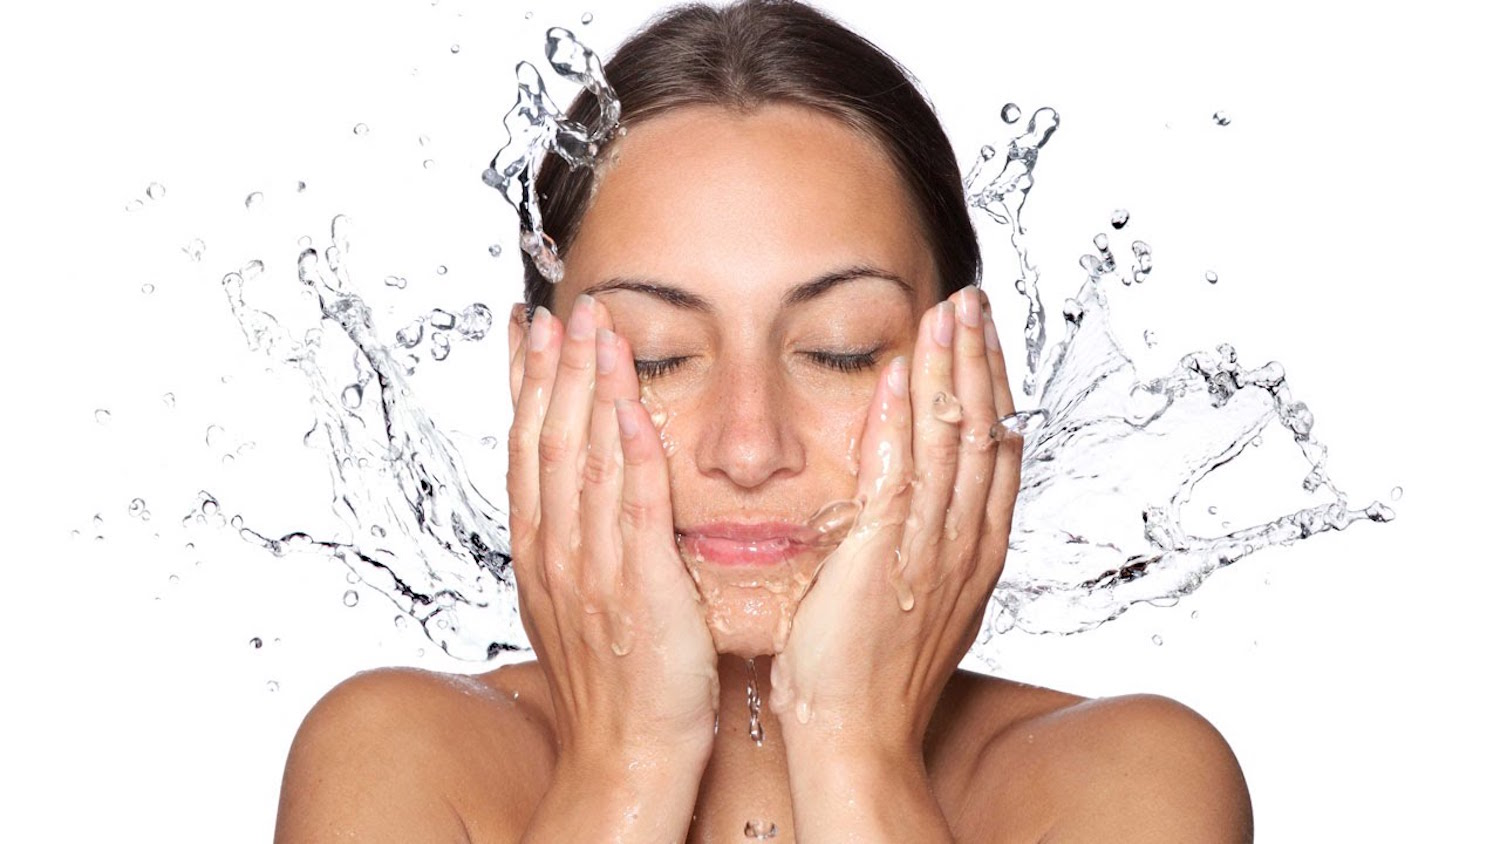 washing face with water